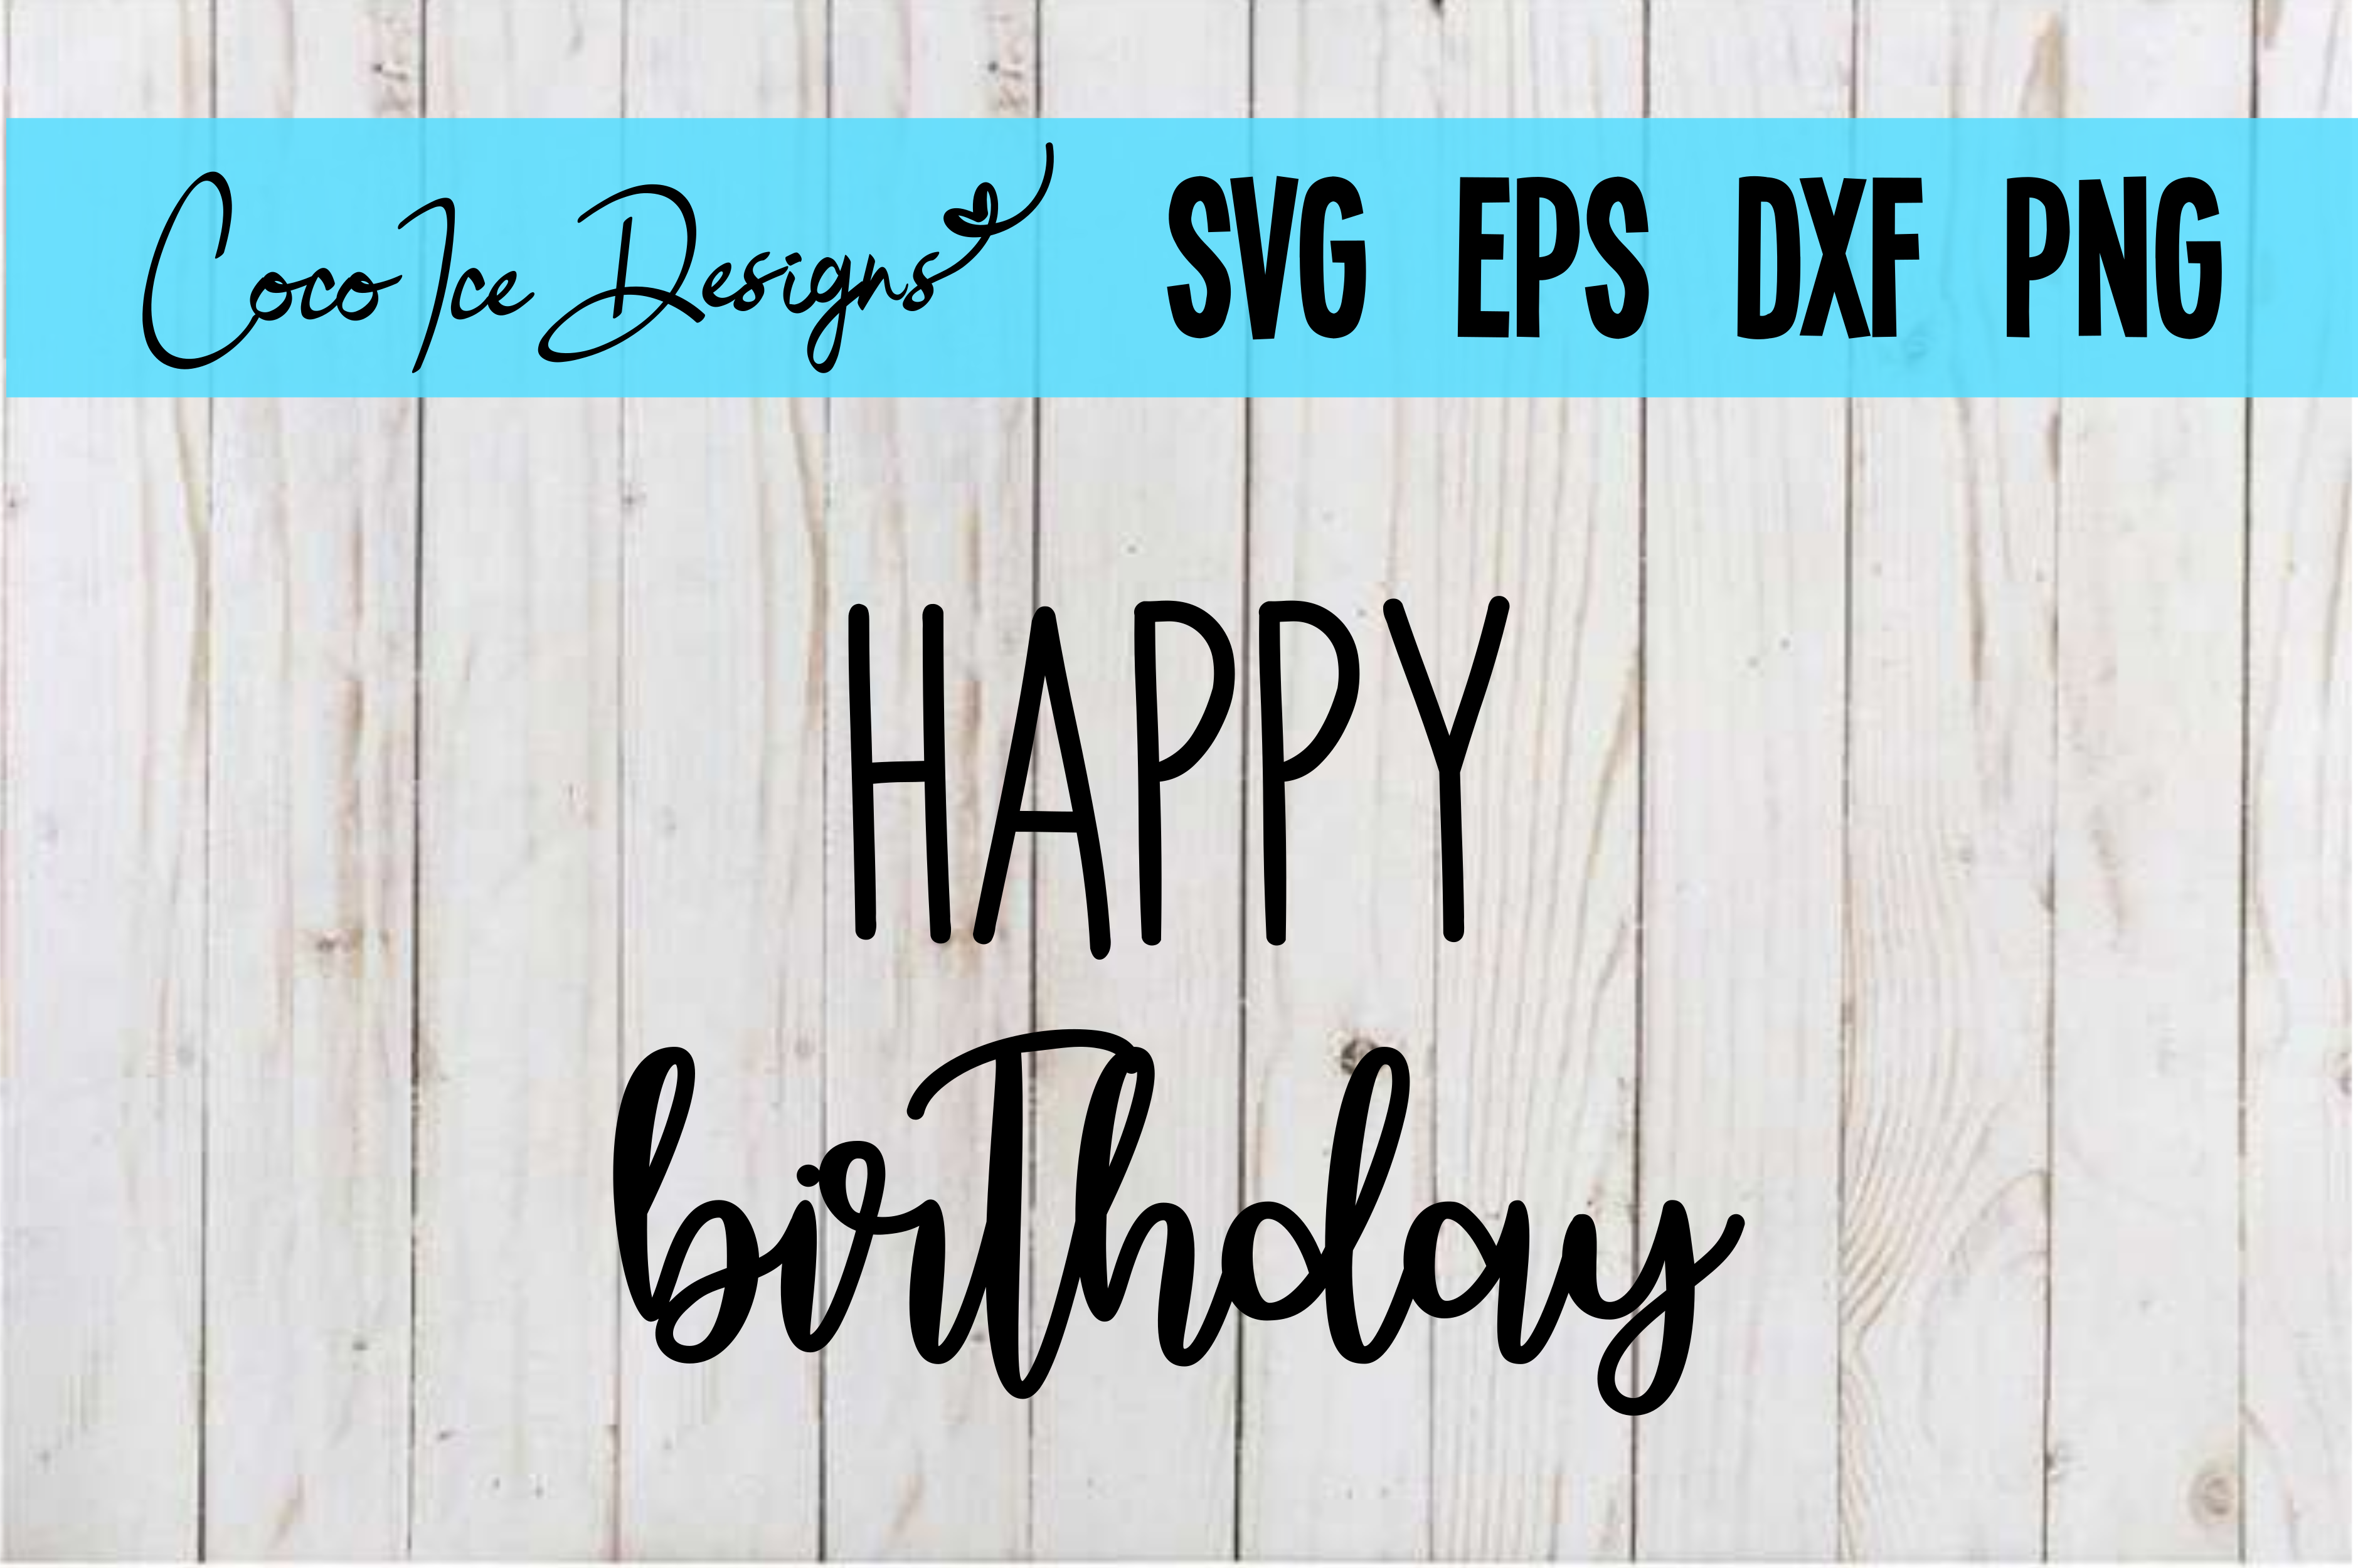 Download Free Happy Birthday Cut Graphic By Cocoicedesigns Creative Fabrica for Cricut Explore, Silhouette and other cutting machines.